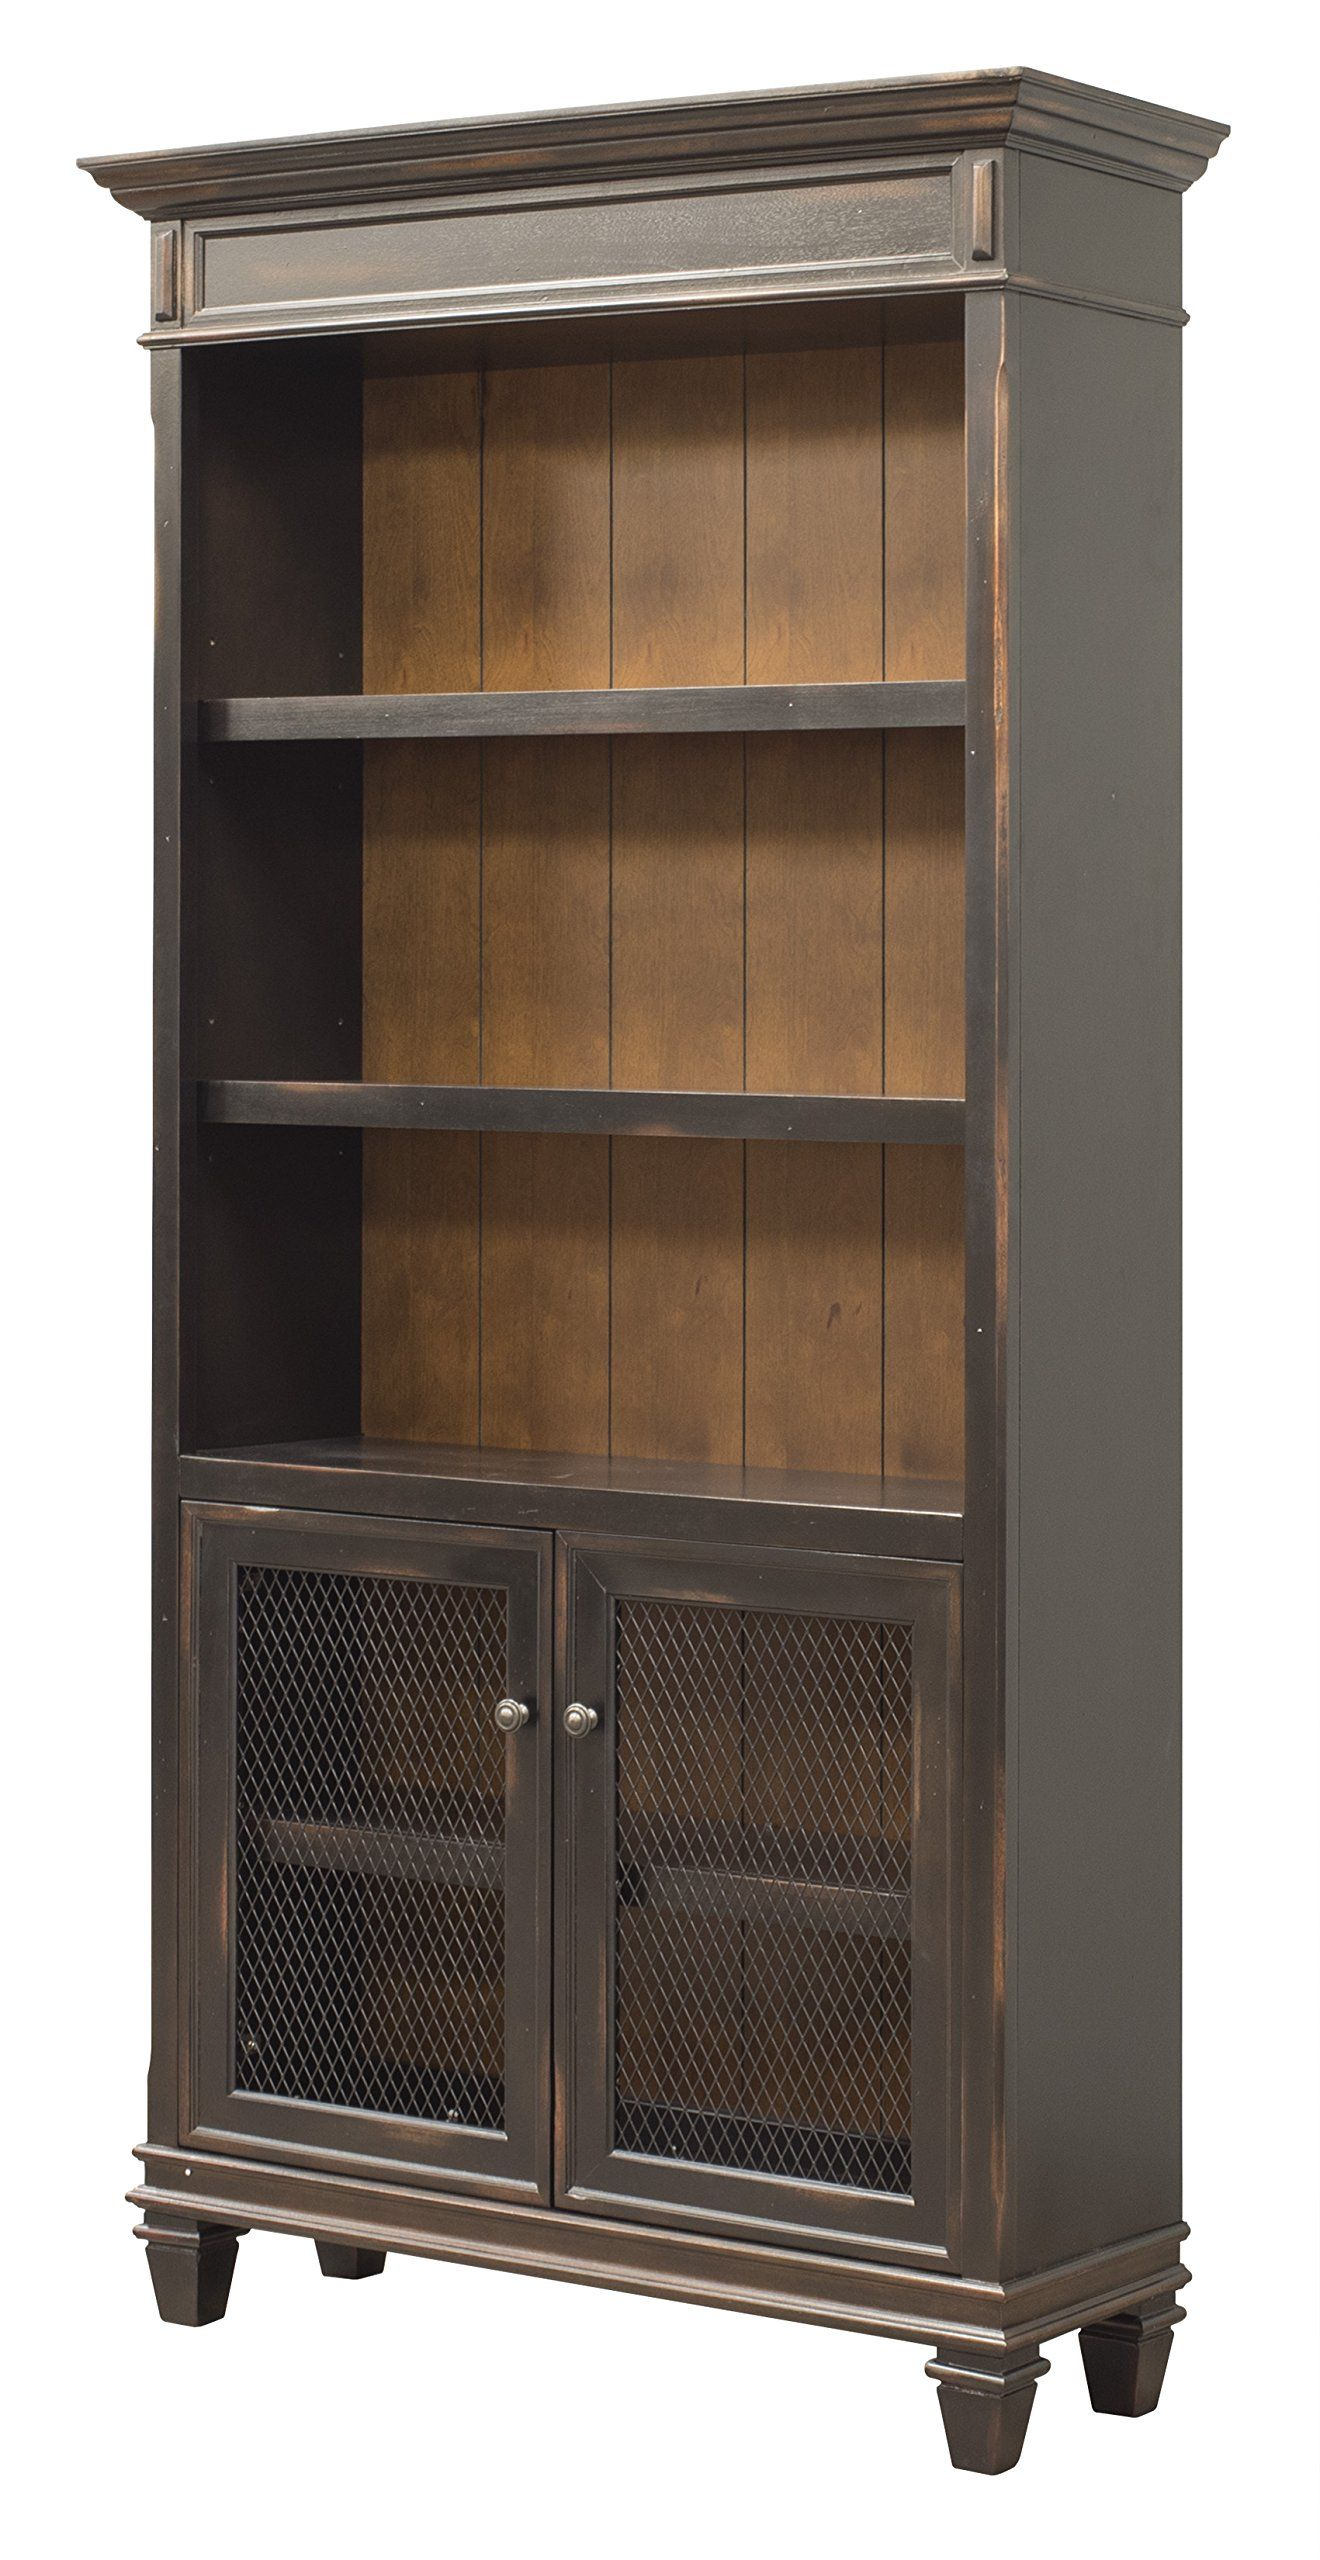 Martin furniture hartford library bookcase brown fully assembled learn more by visiting the image link affiliate link bookcases